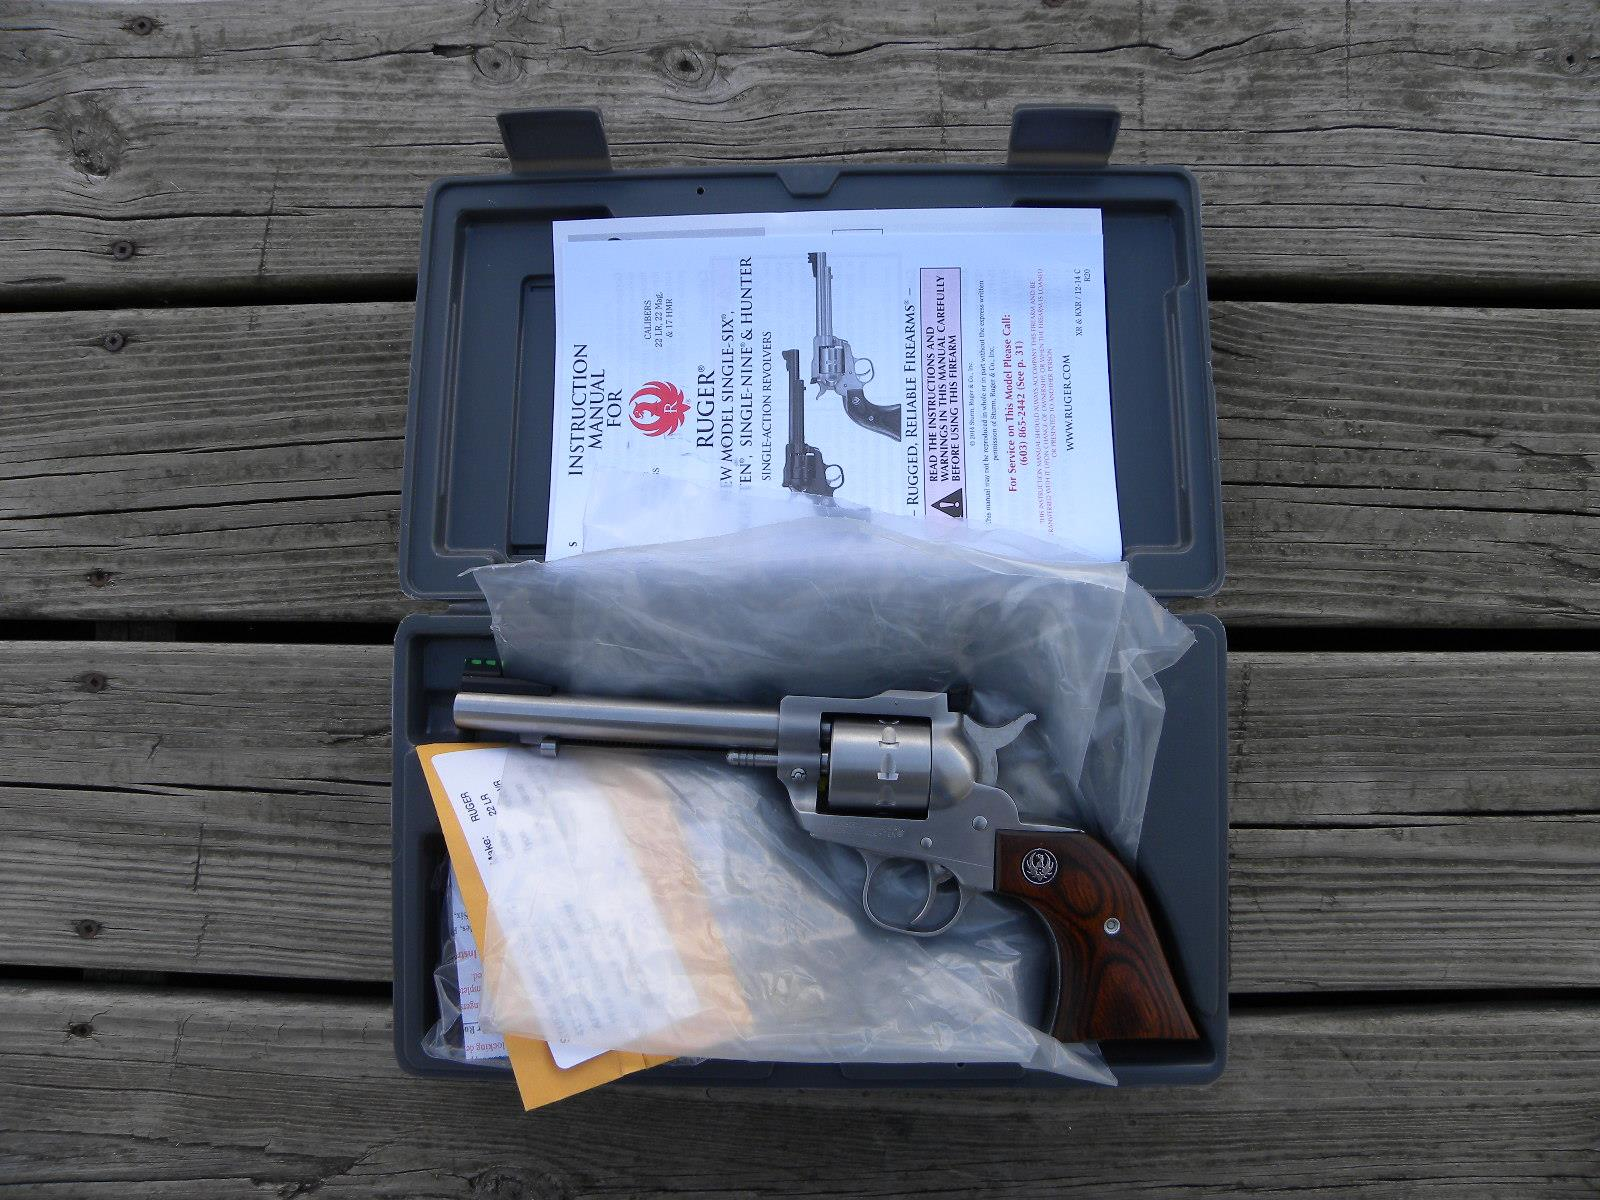 Ruger Single Ten .22lr 10 shot #8100 NIB  Guns > Pistols > Ruger Single Action Revolvers > Single Six Type